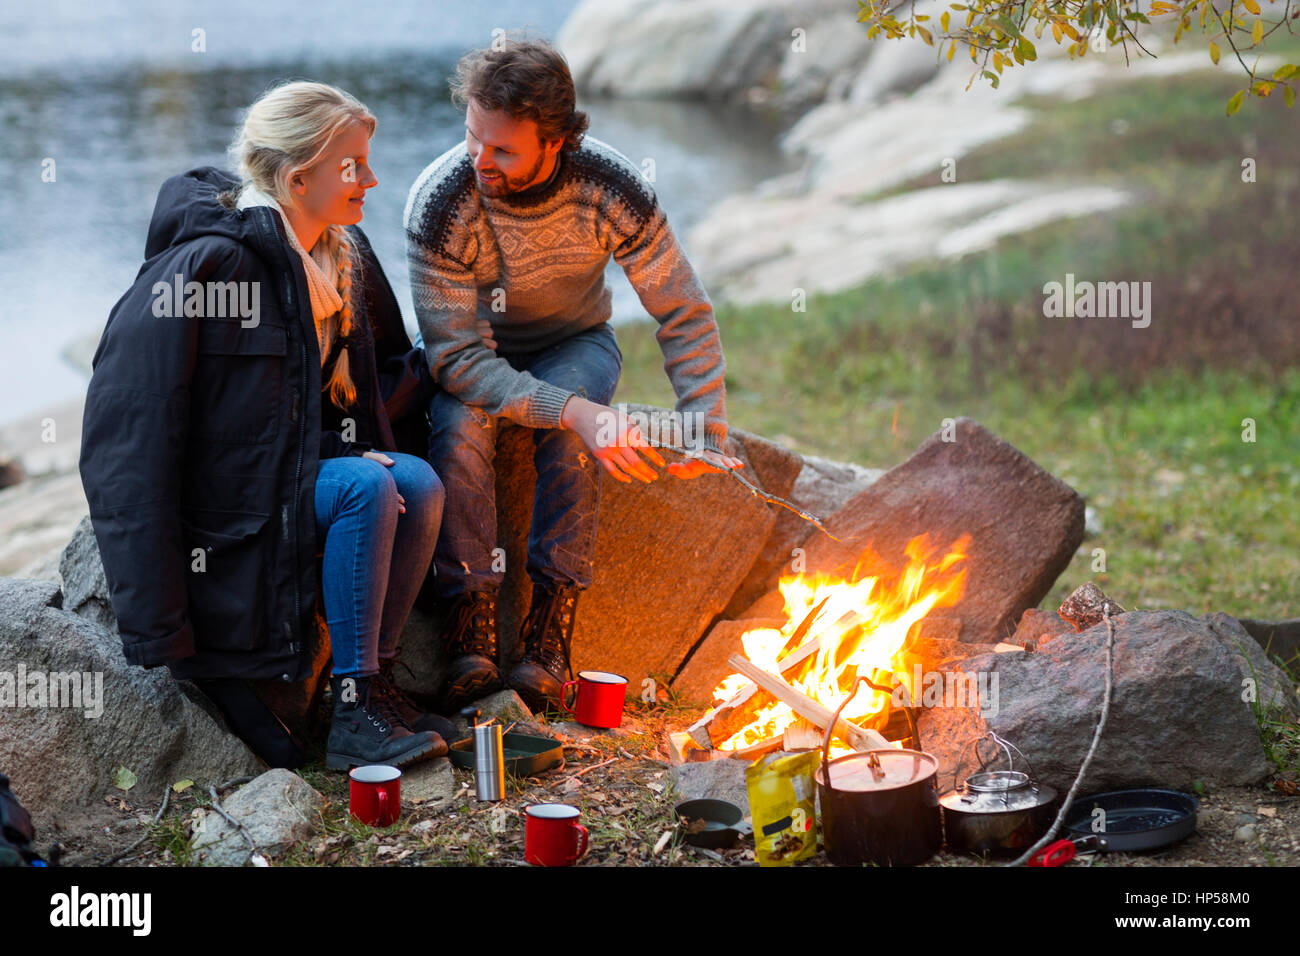 Couple Looking At Each Other White Sitting By Campfire Stock Photo